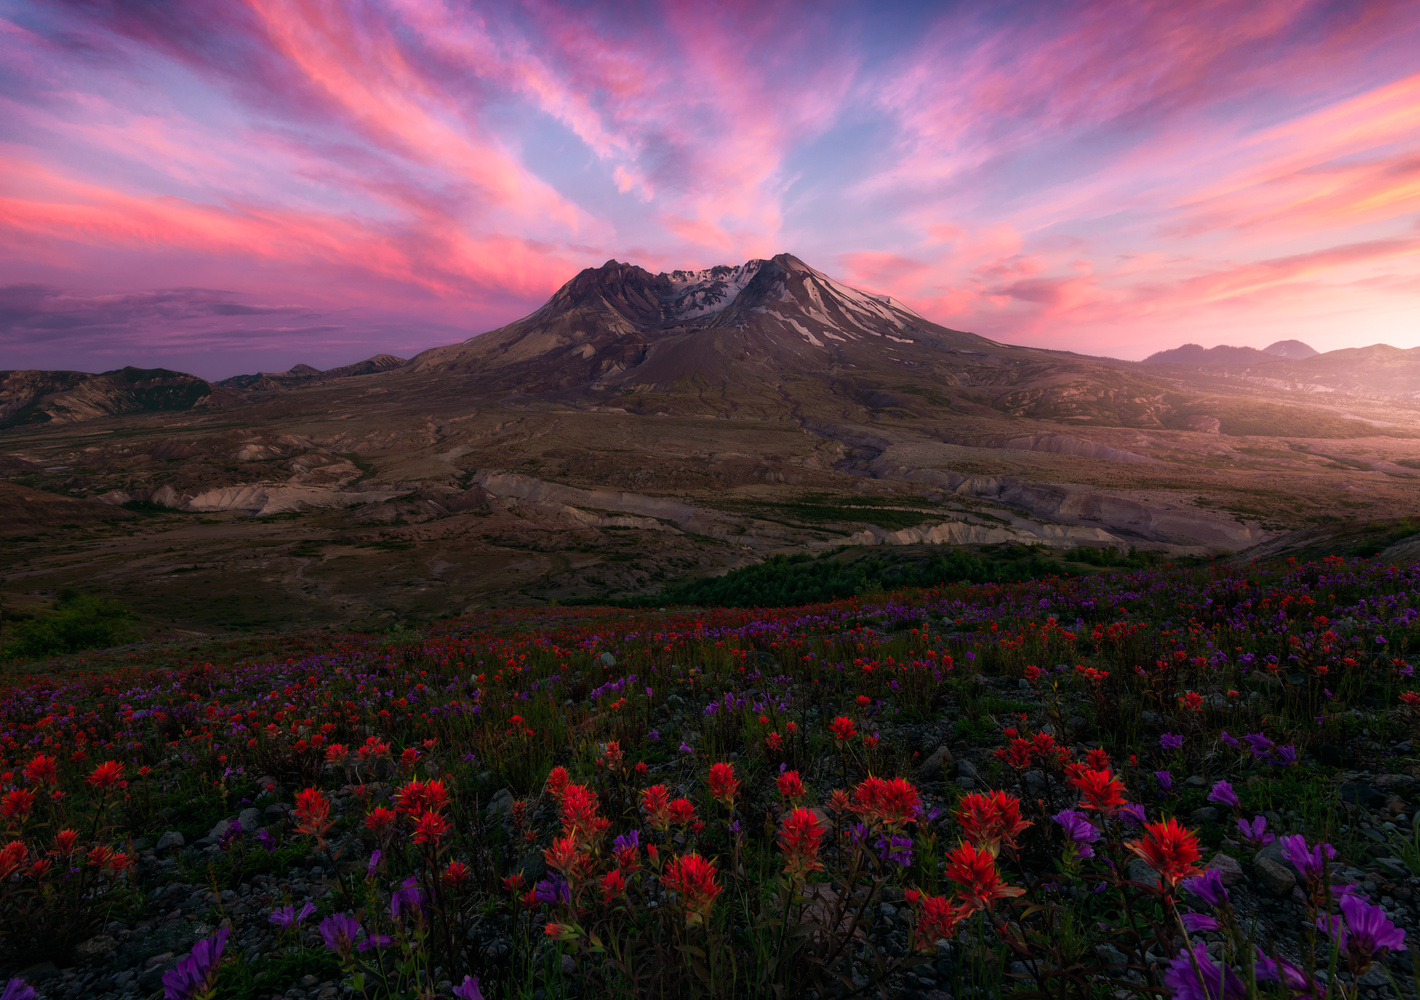 Mount St Helens sunset by KENNETH FURMAN